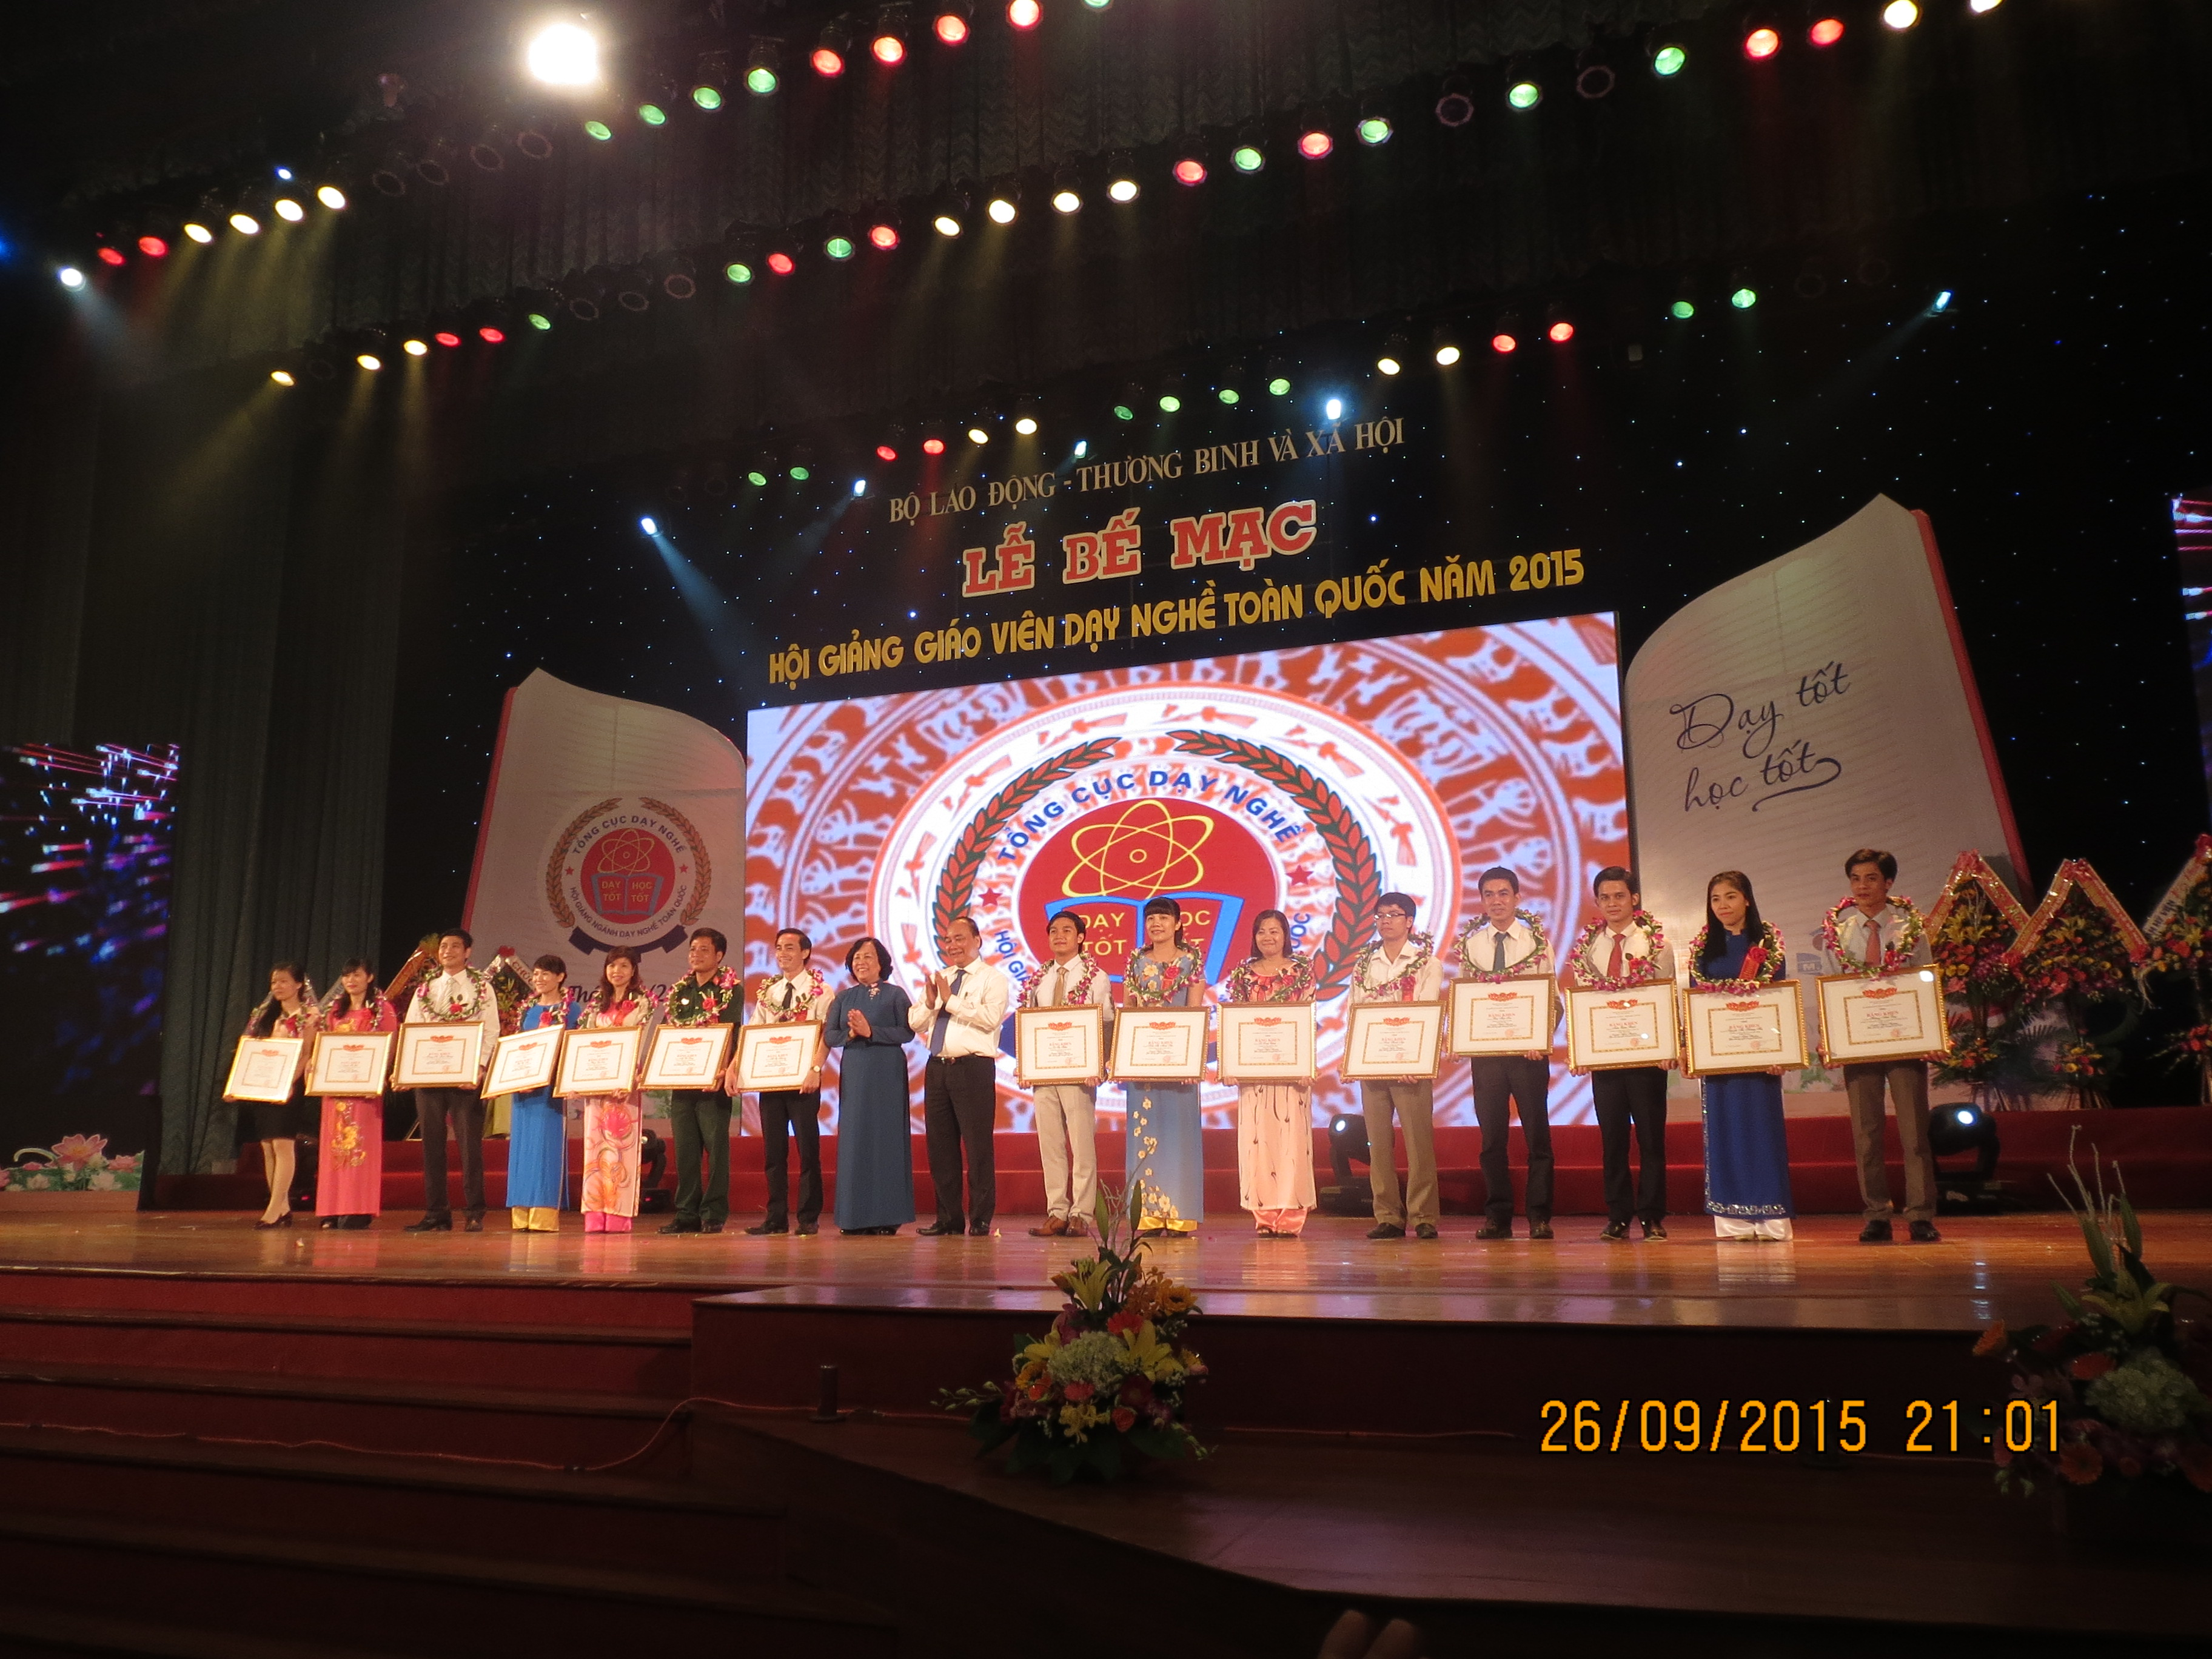 Member of Political Bureau, Deputy Prime Minister Nguyen Xuan Phuc and Minister of Labour – Invalids & Social Affairs Nguyen Thi Hai Chuyen award certificate of honor to first prize winners